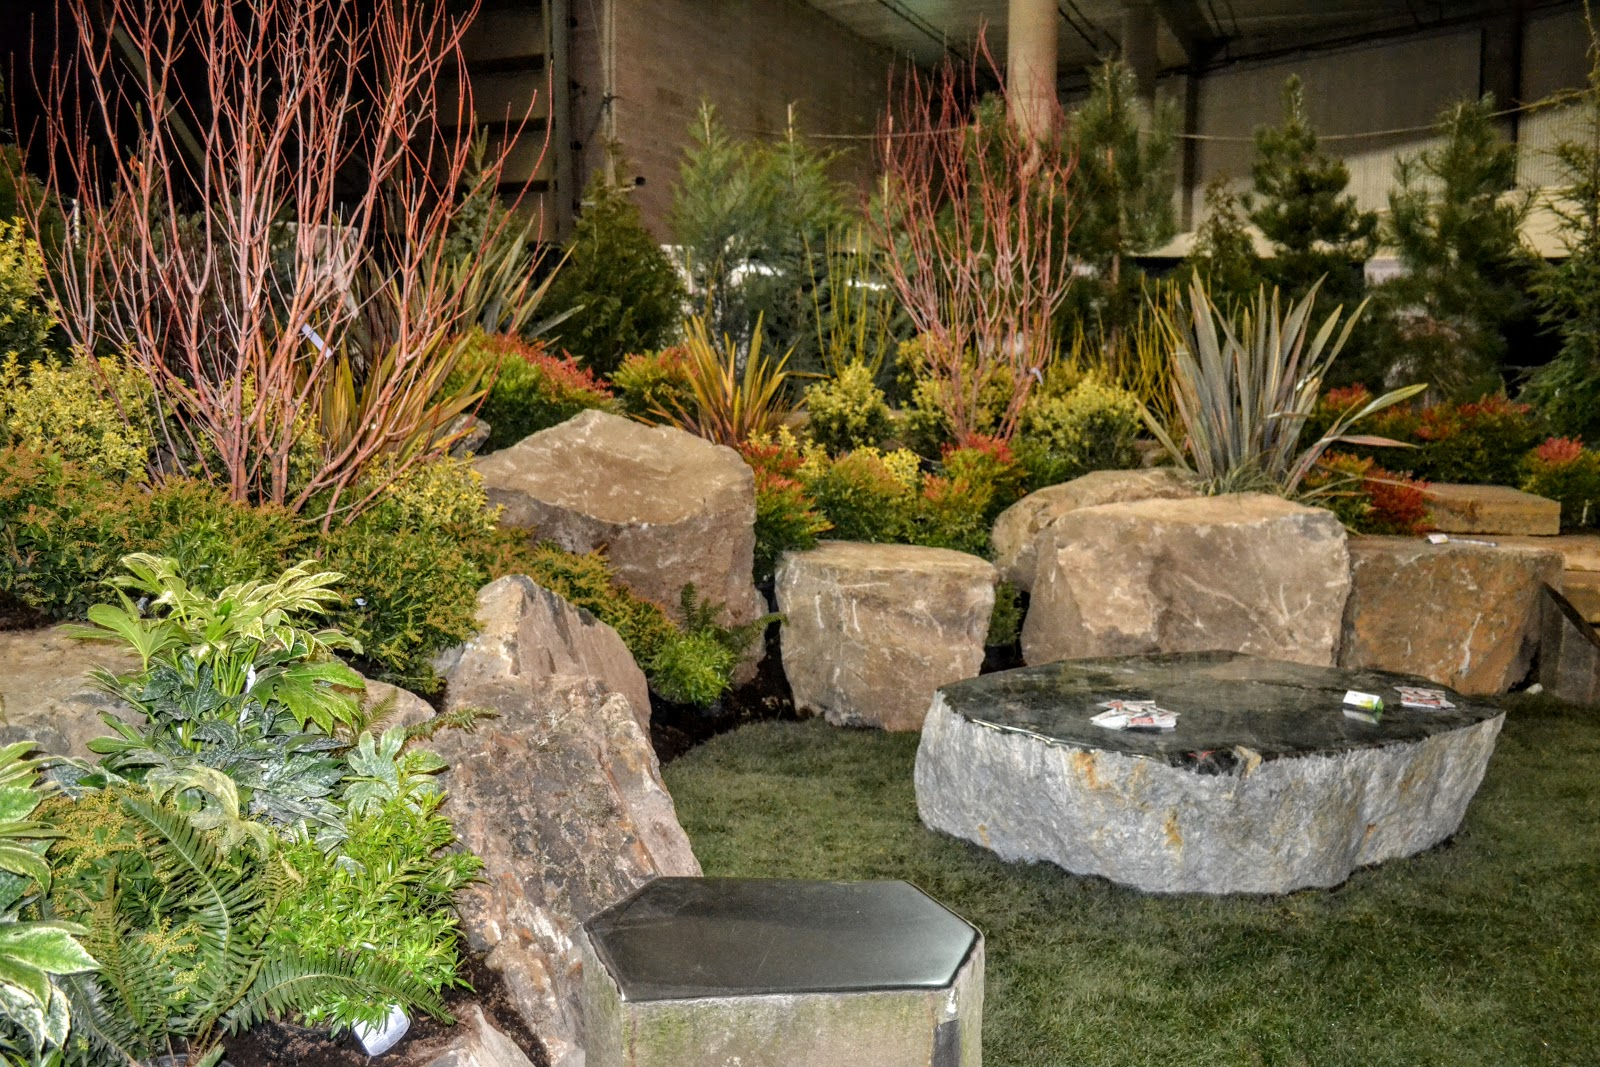 The Outlaw Gardener: The Tacoma Home and Garden Show Part 2 Some Plants